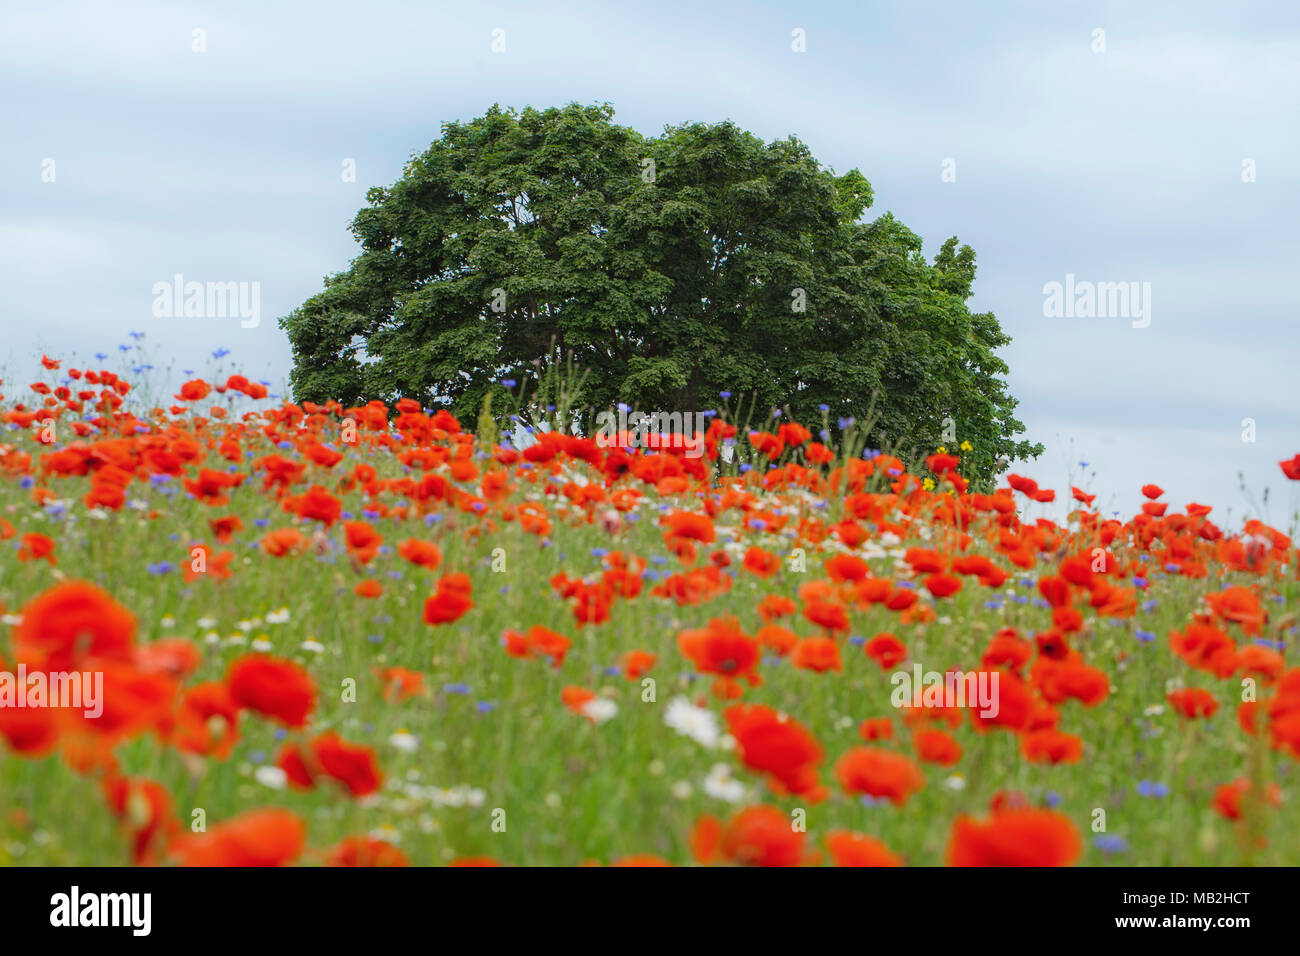 Summer tree in the red poppy's field - Stock Image